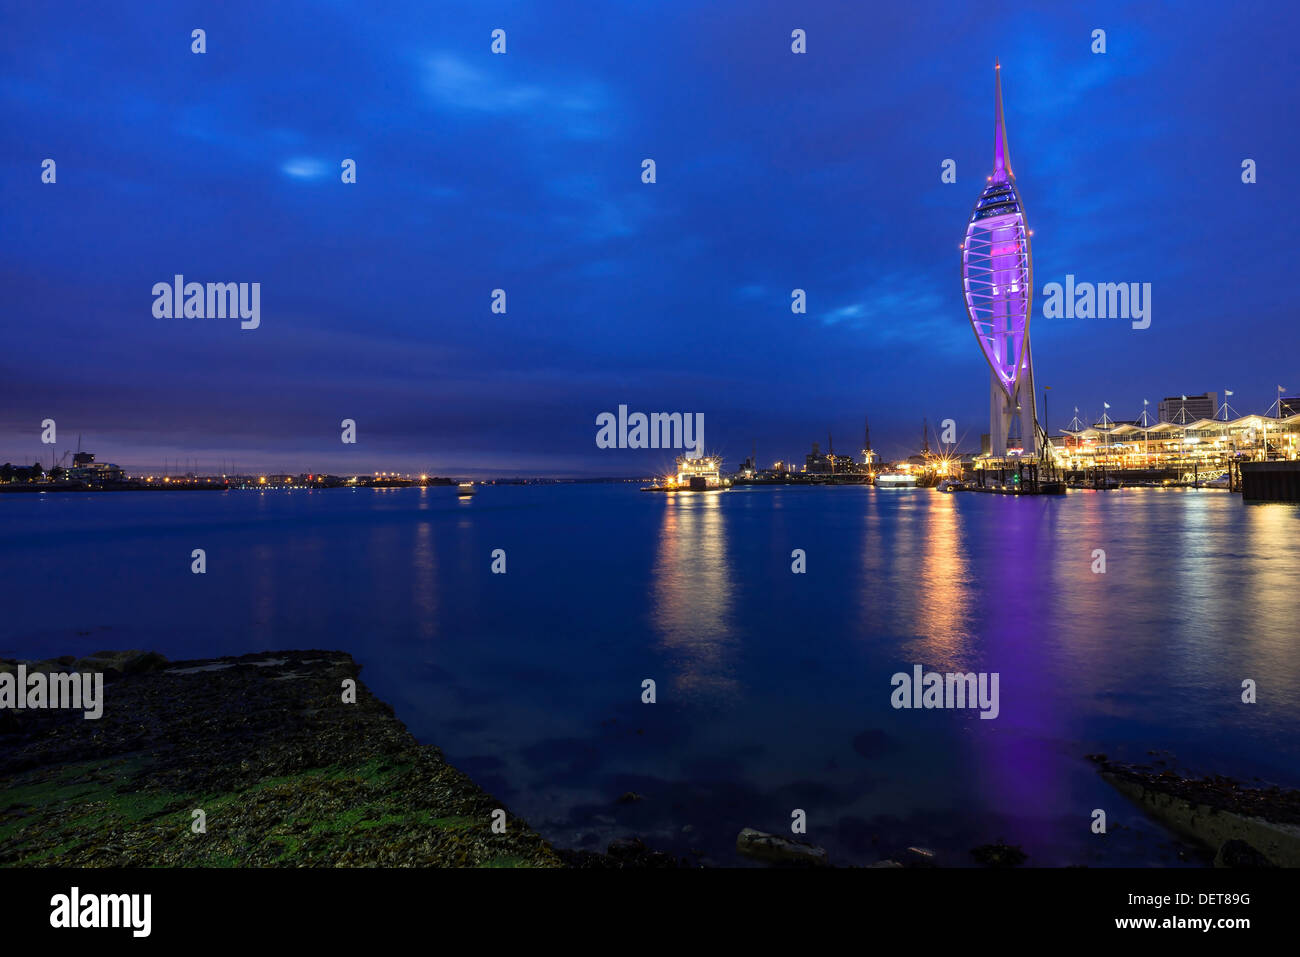 A view of Tower Spinnaker at Portsmouth, Hampshire, UK Stock Photo